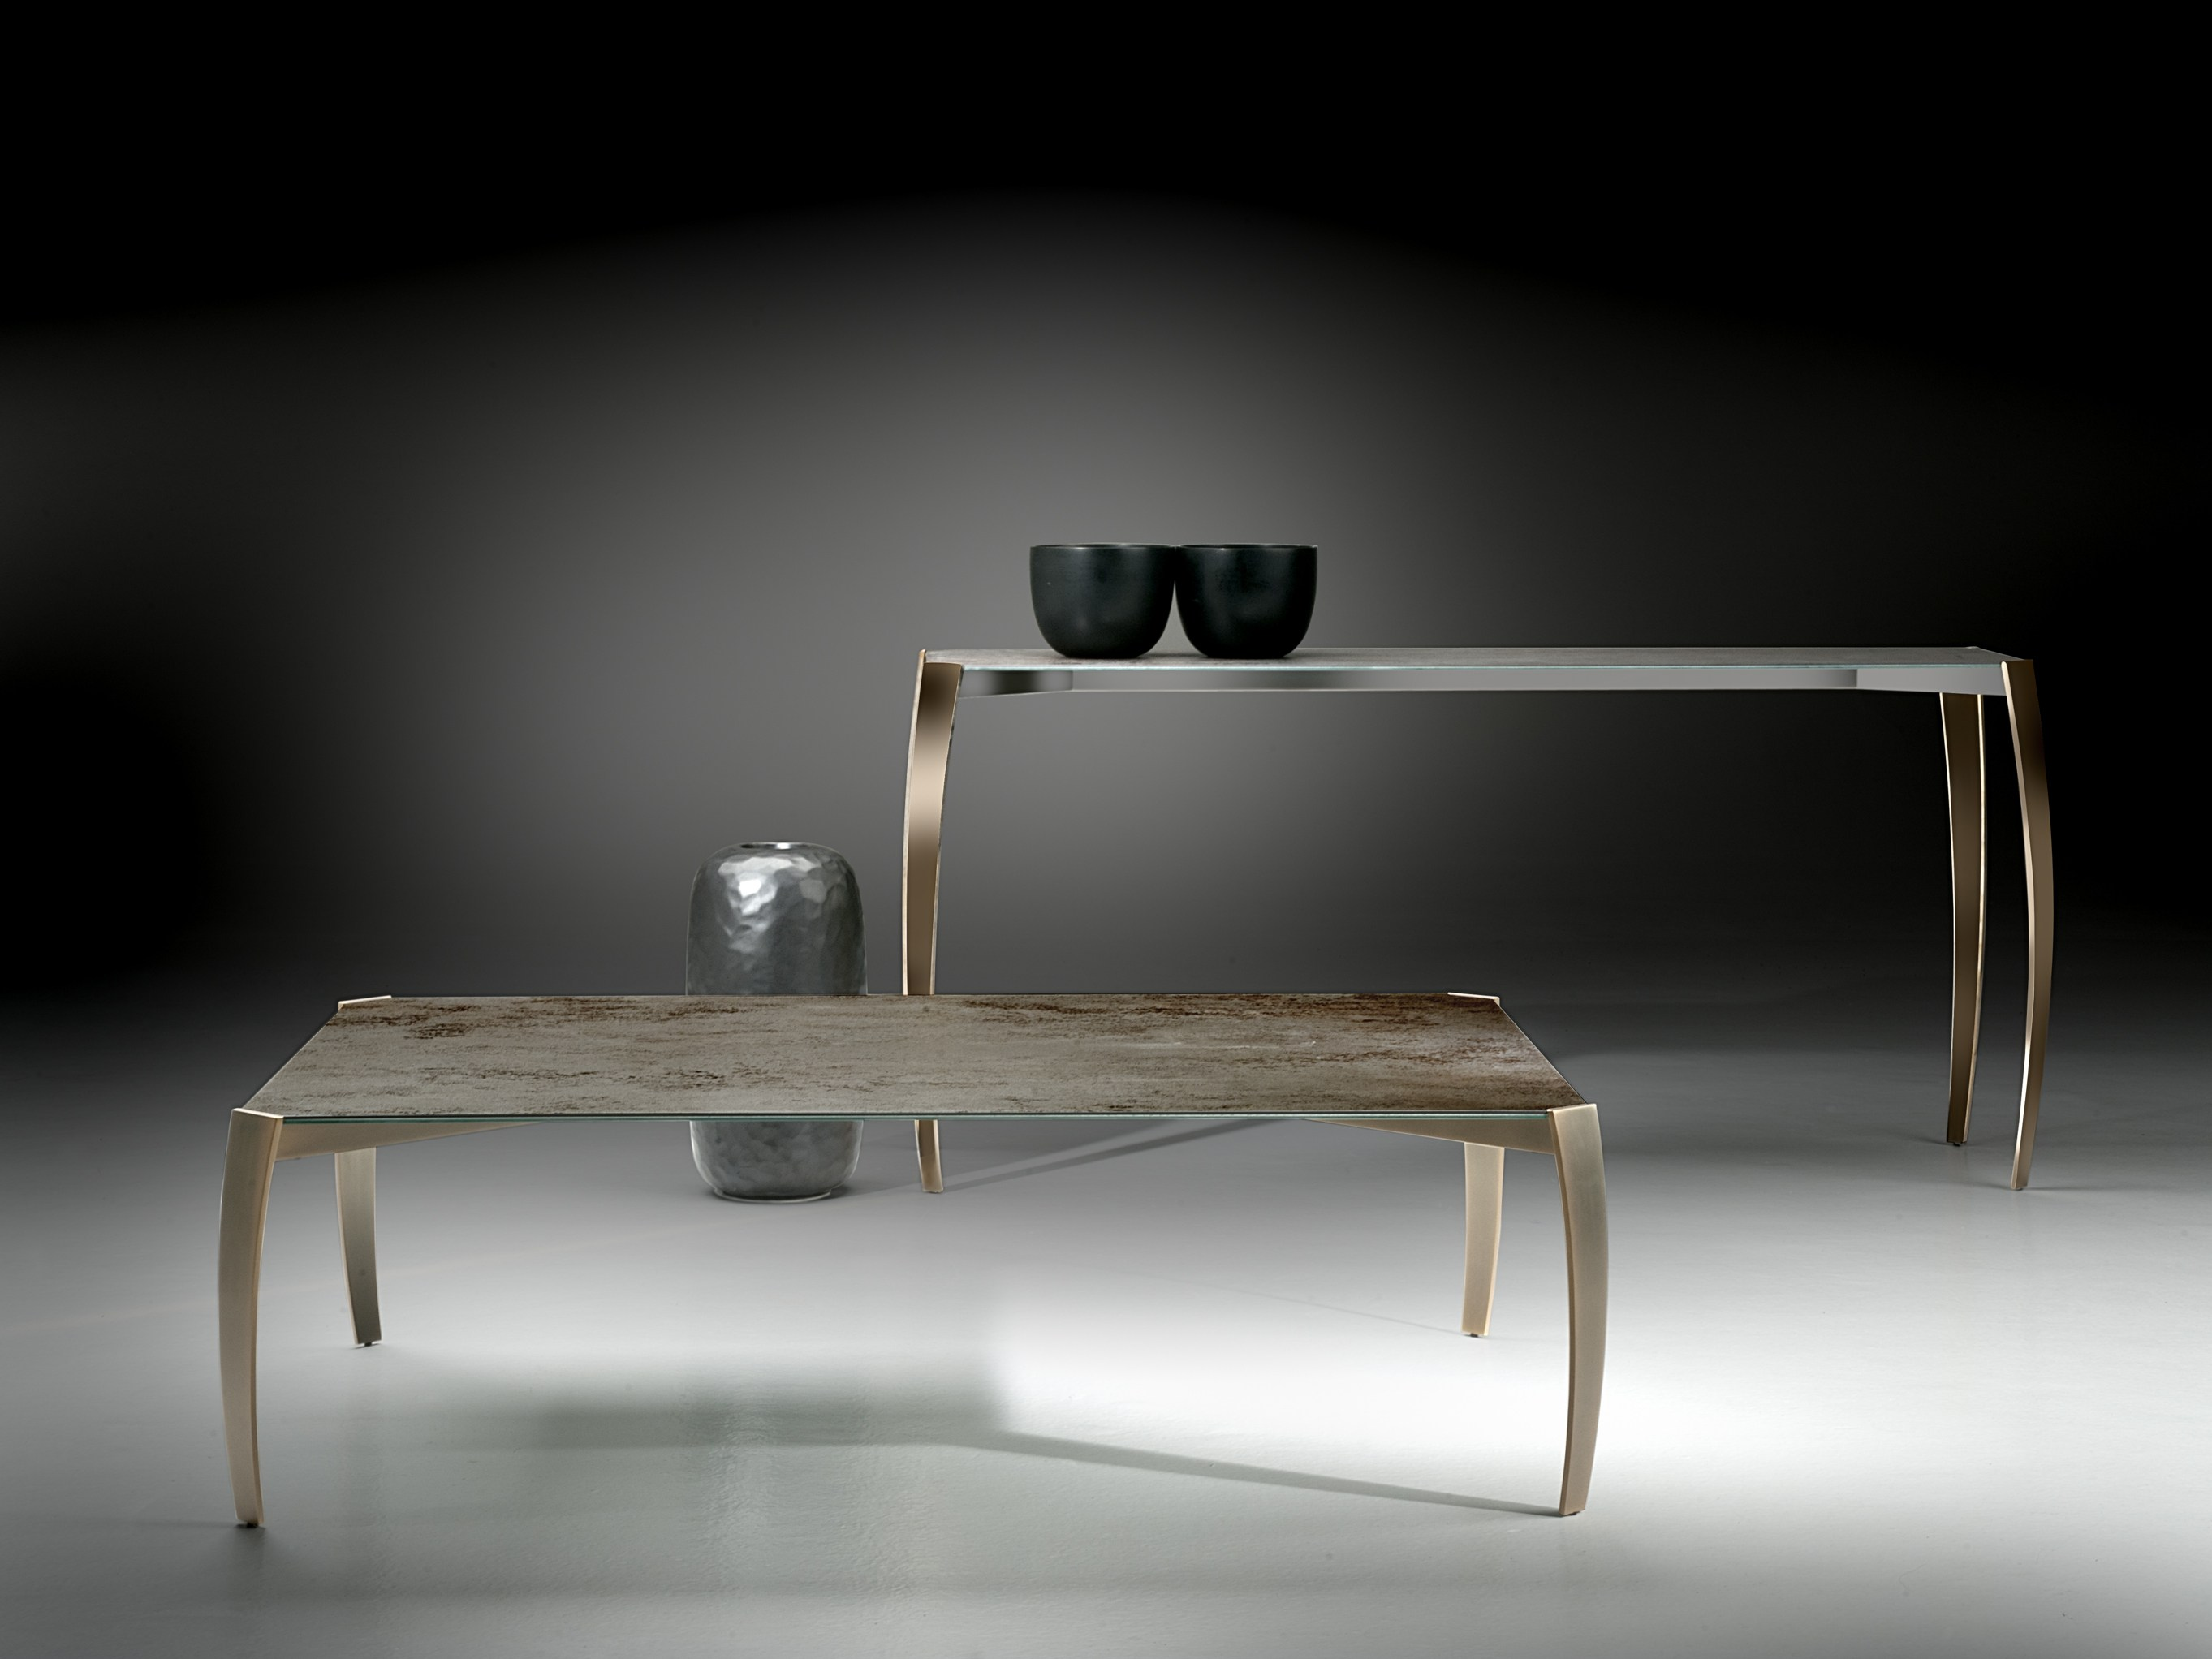 Spider table basse by orsenigo design umberto asnago - Table ceramique italie ...